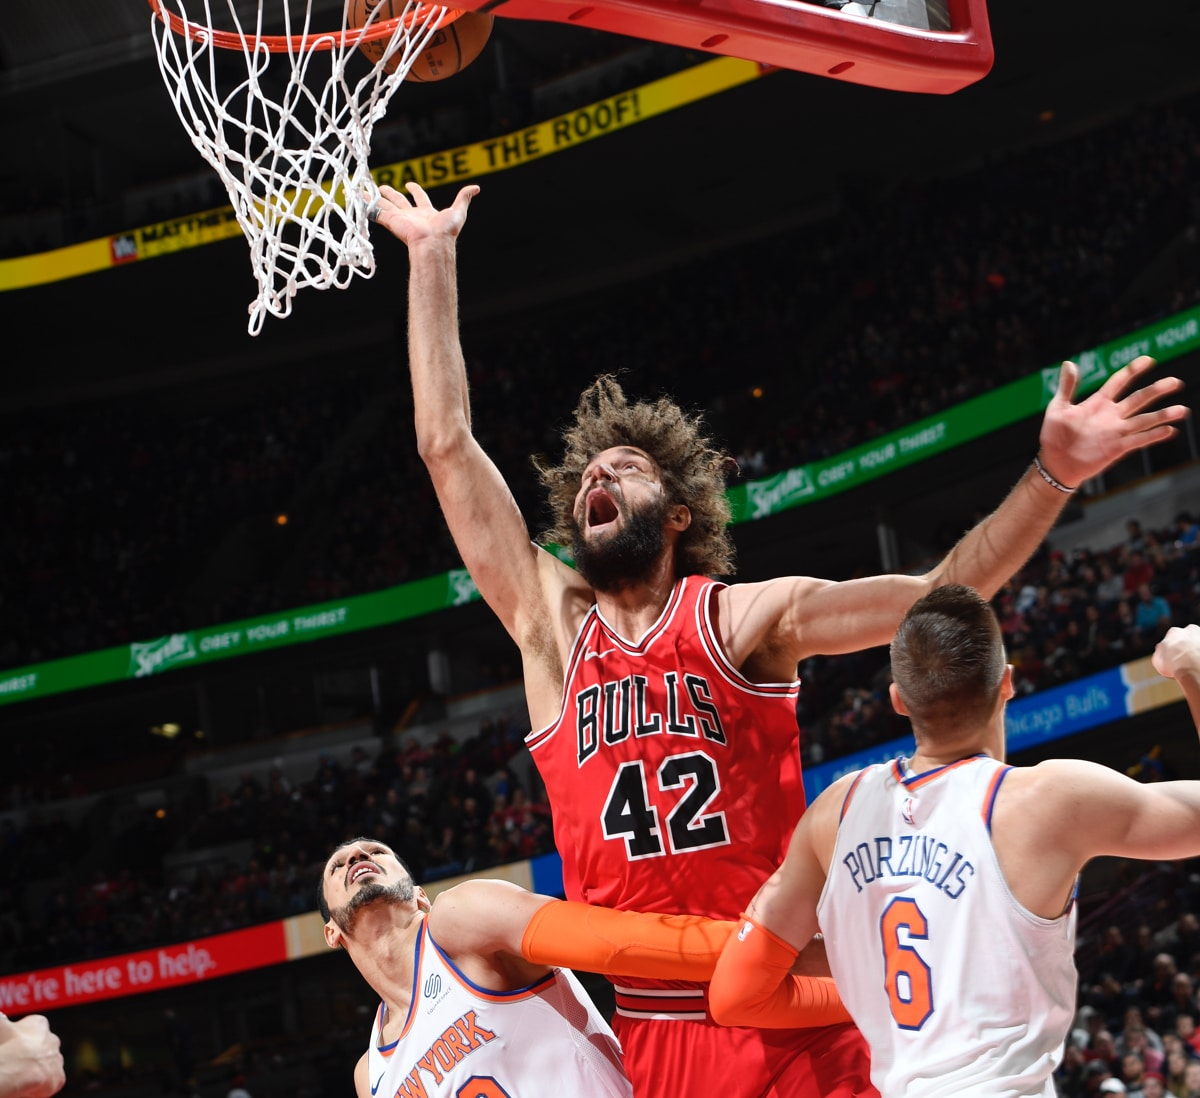 Robin Lopez fights to put the ball in the hoop against the New York Knicks